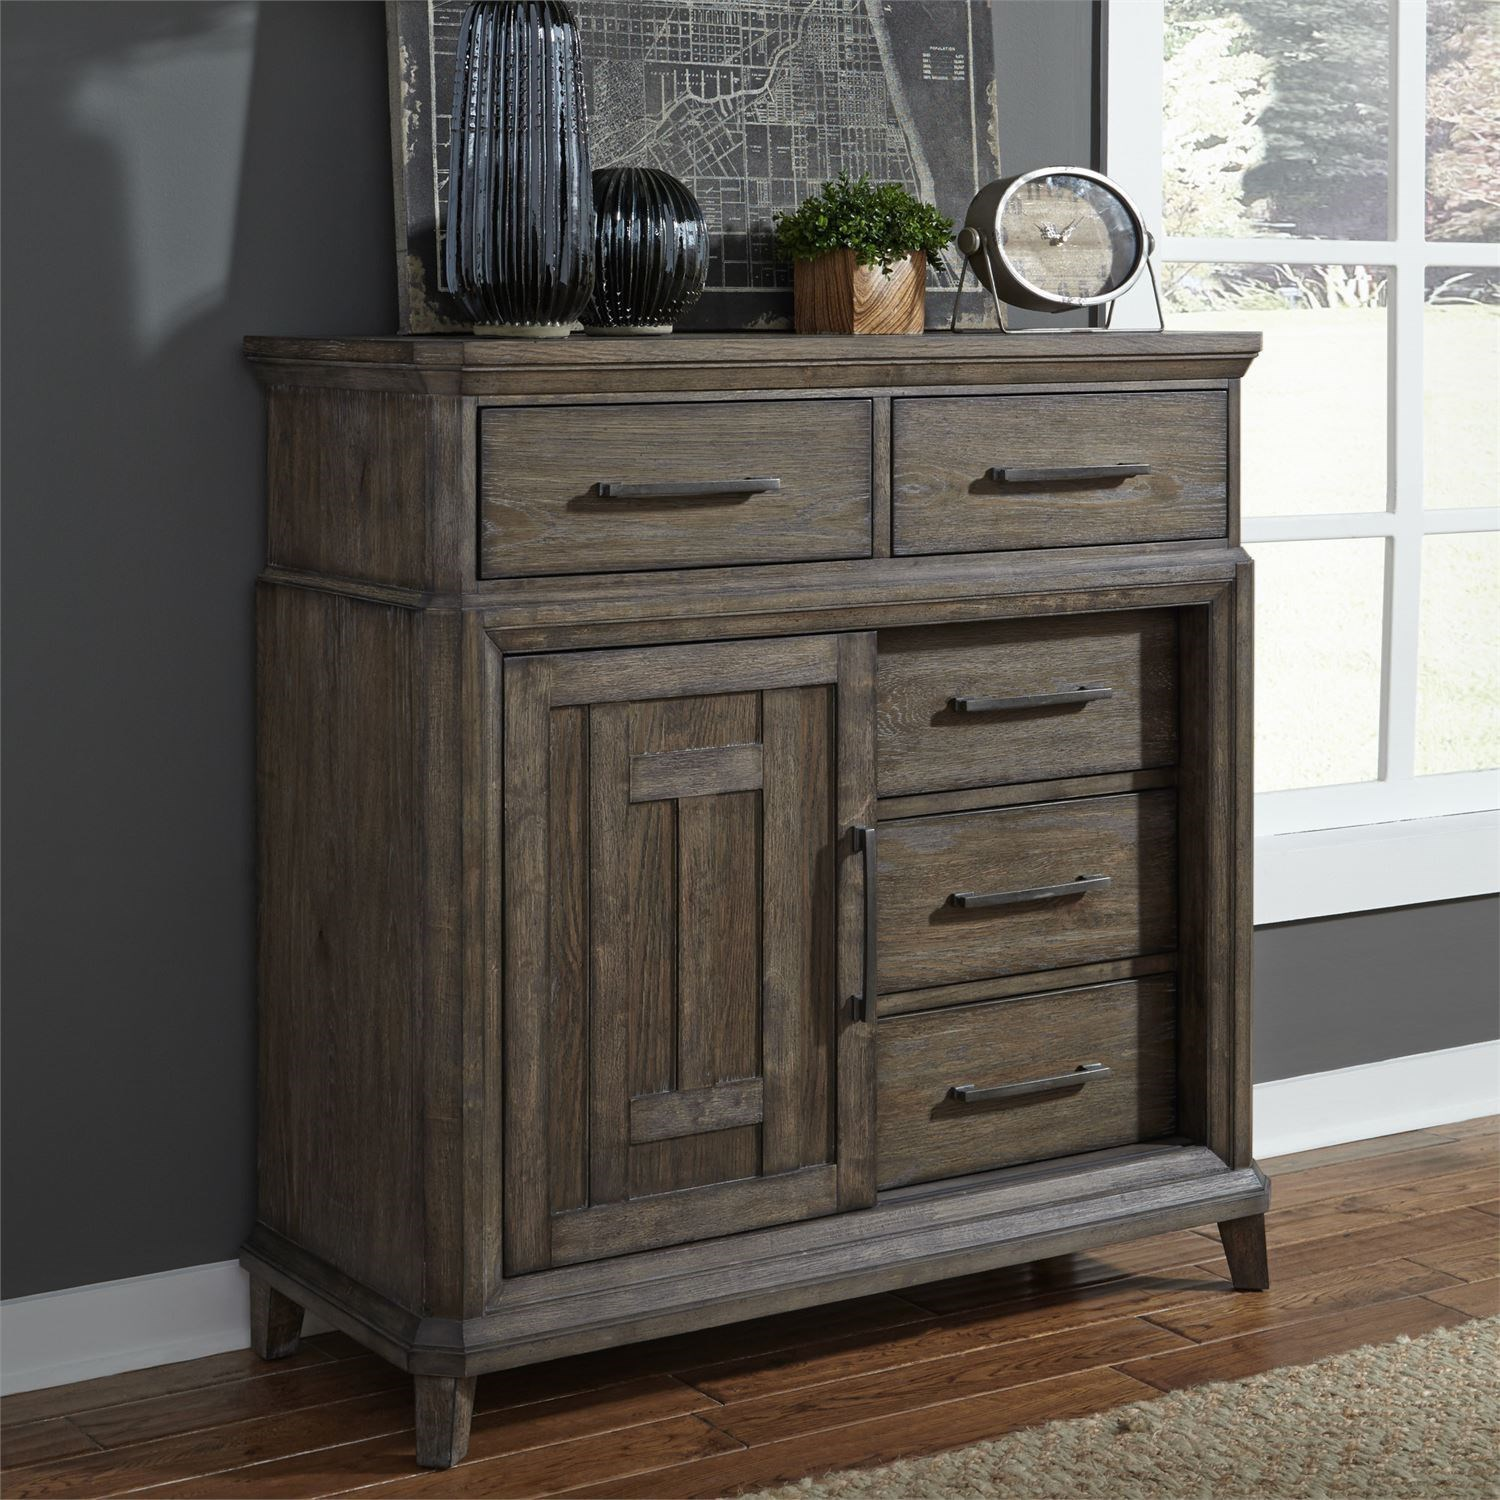 Transitional 5 Drawer Chest with Doors with Cedar Lined Bottom Drawer